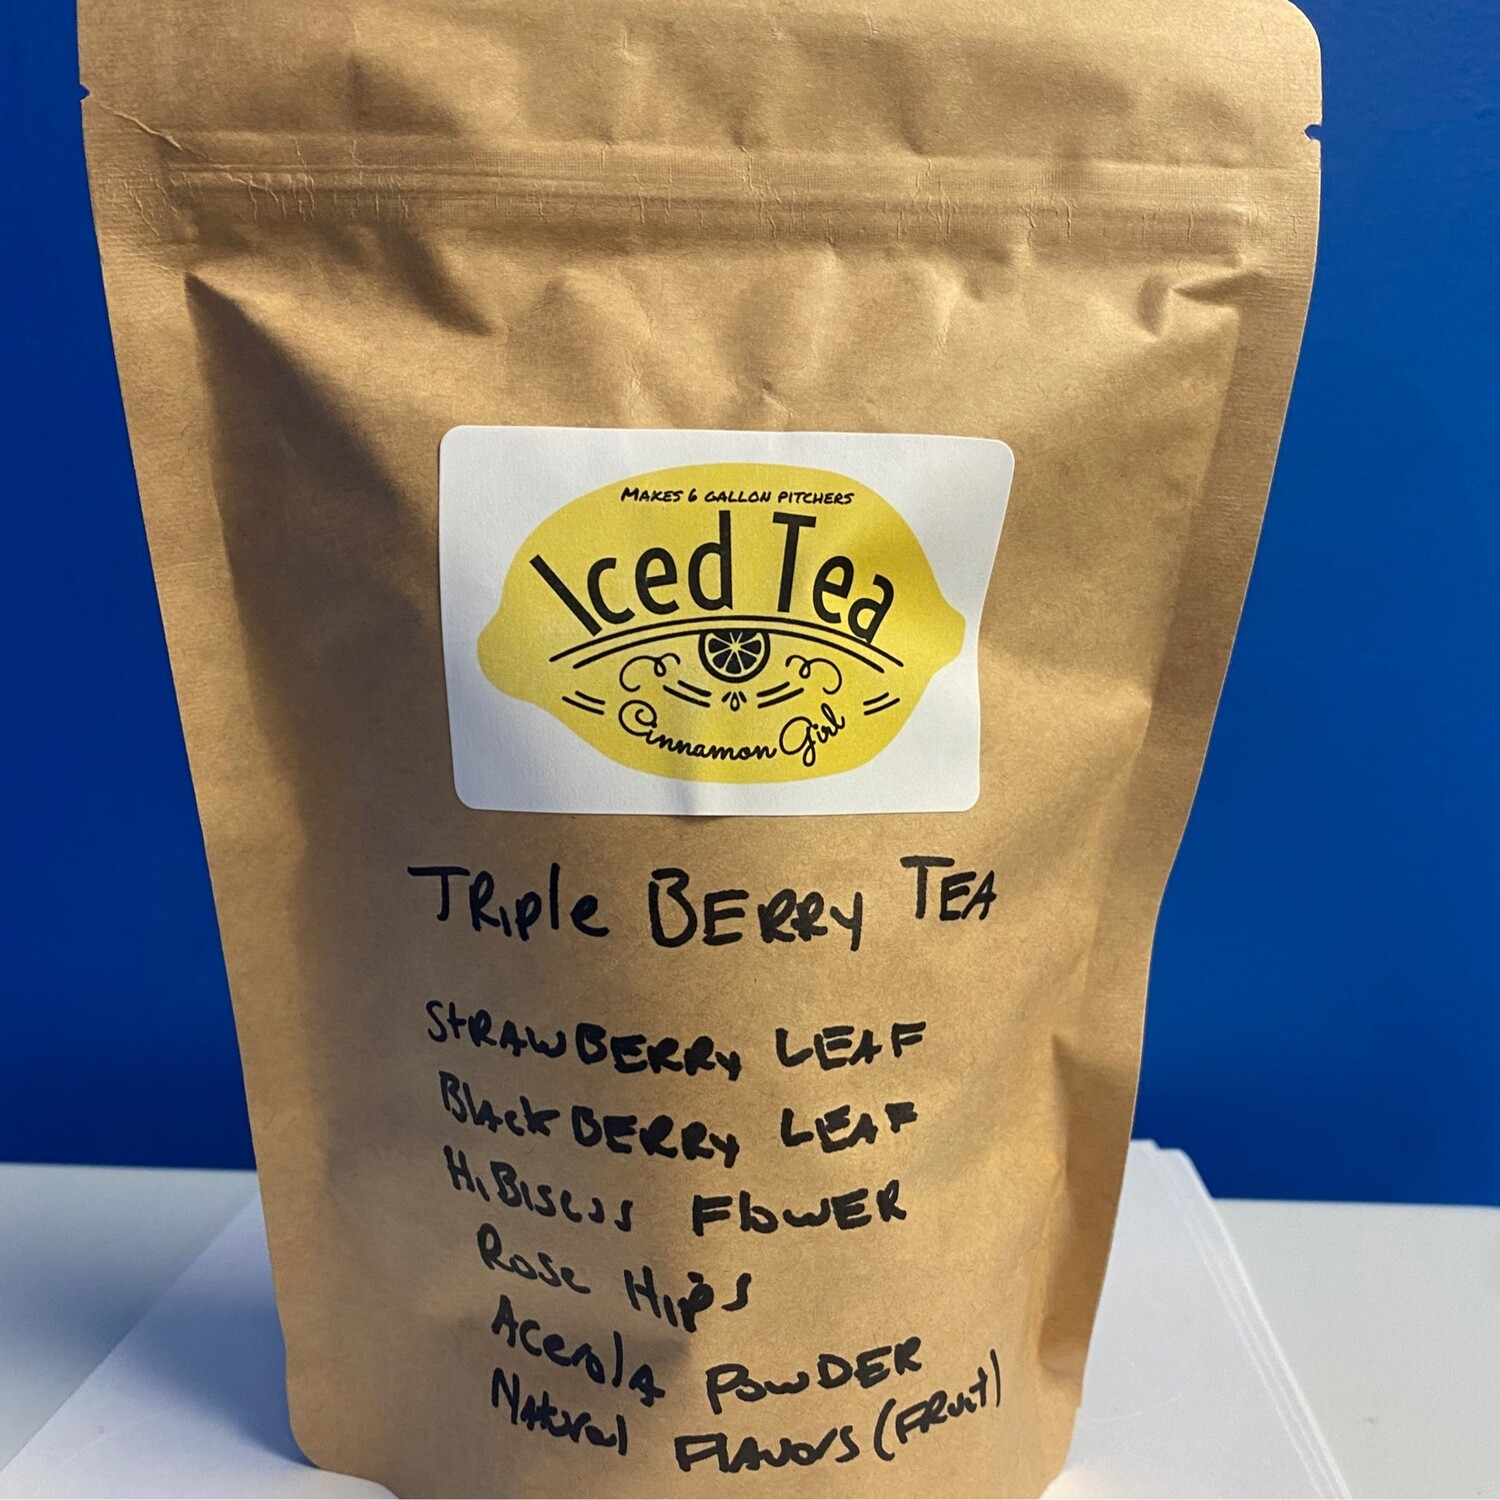 Triple Berry Iced Tea Pitcher Bags Makes  6 (1 gallon pitchers)